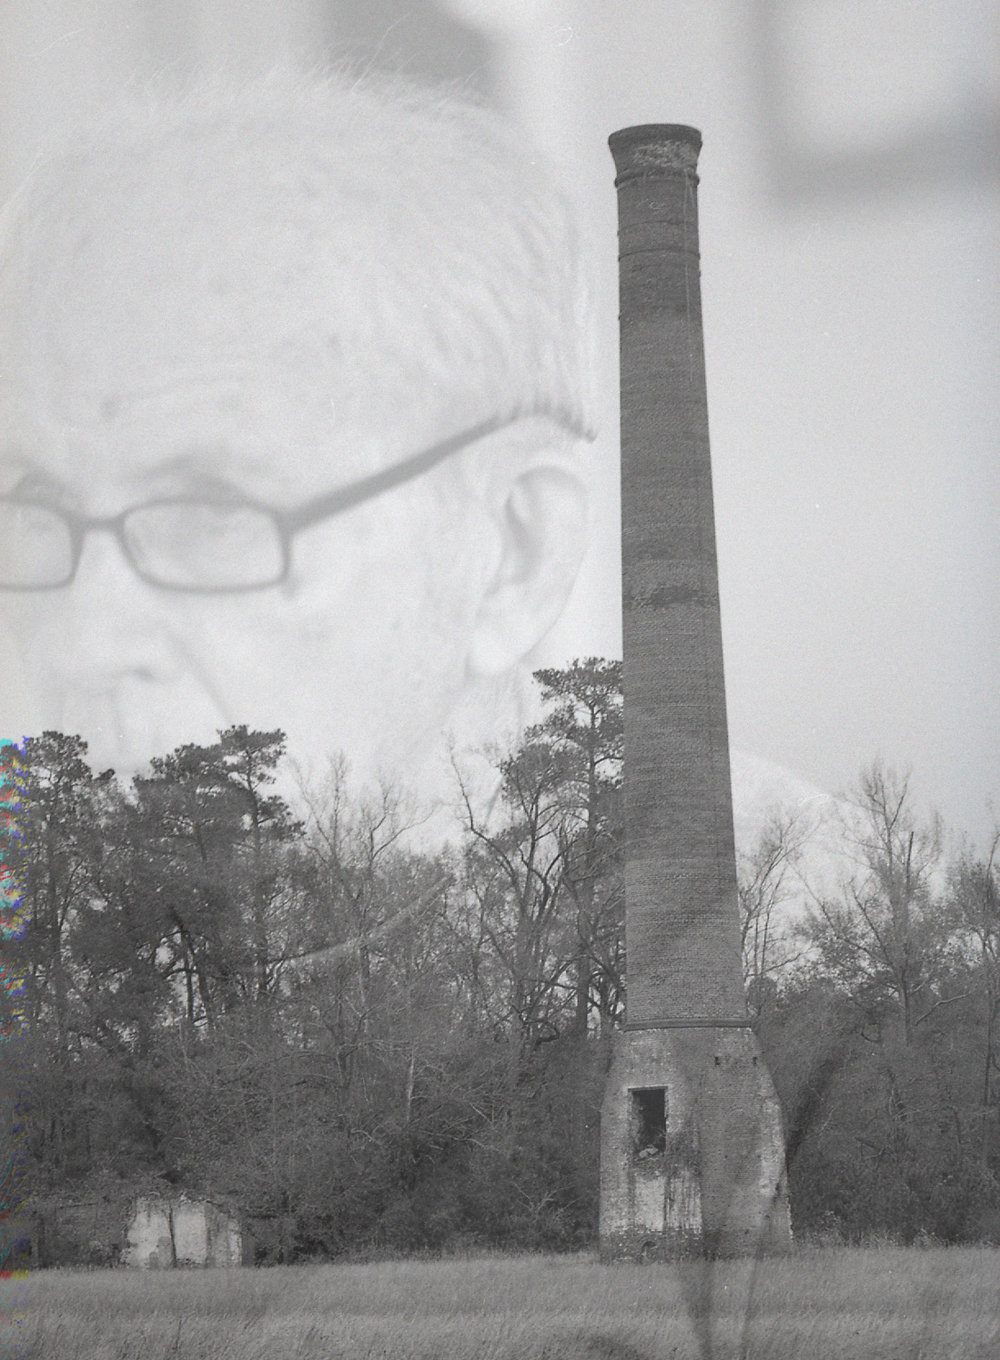 The old mill that burned down.